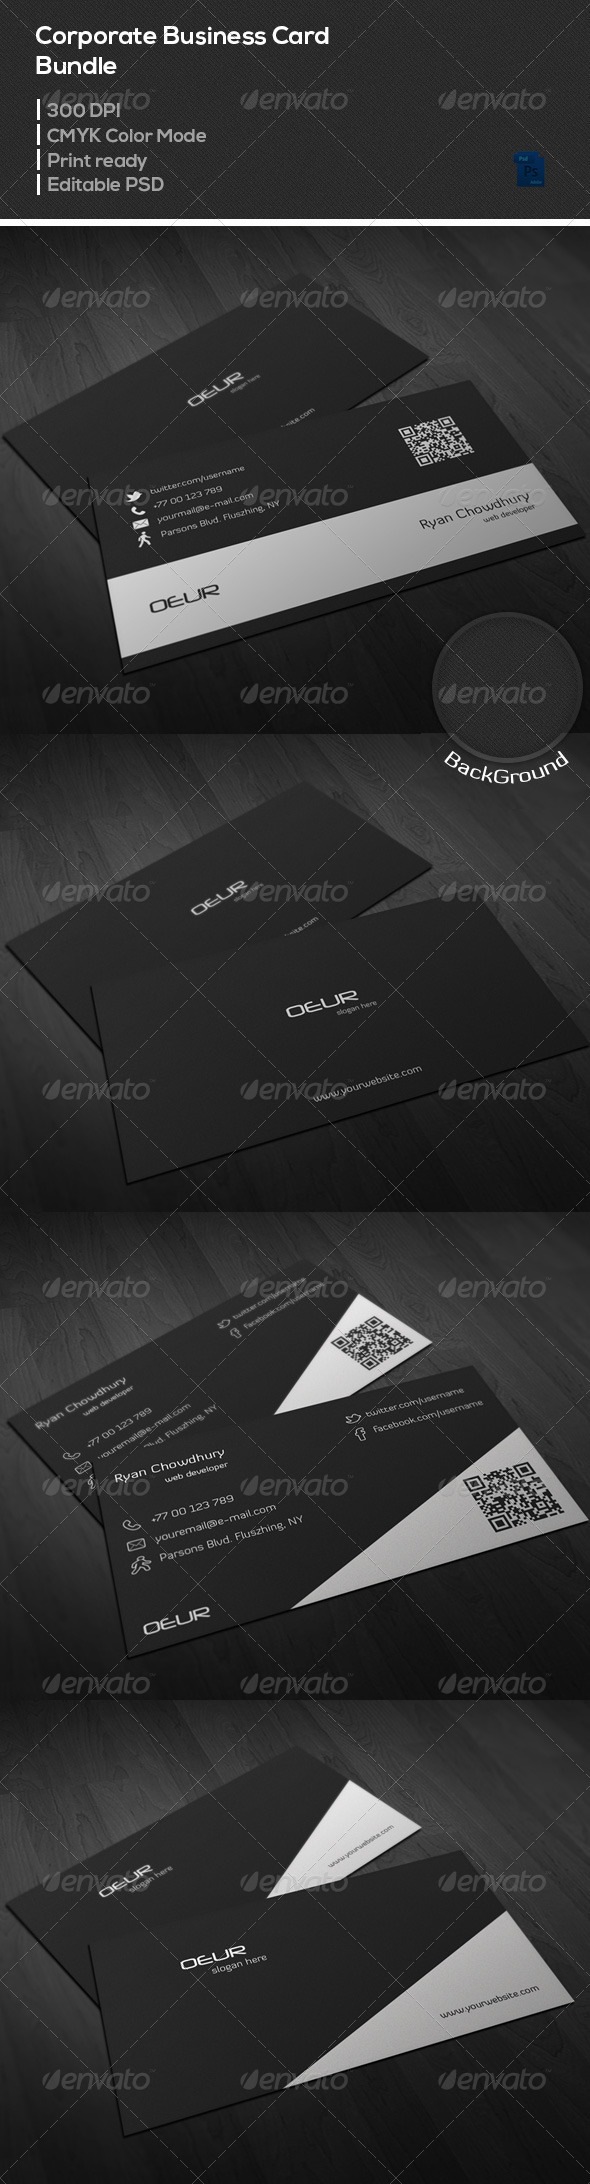 GraphicRiver Corporate Business Card Bundle 7020422